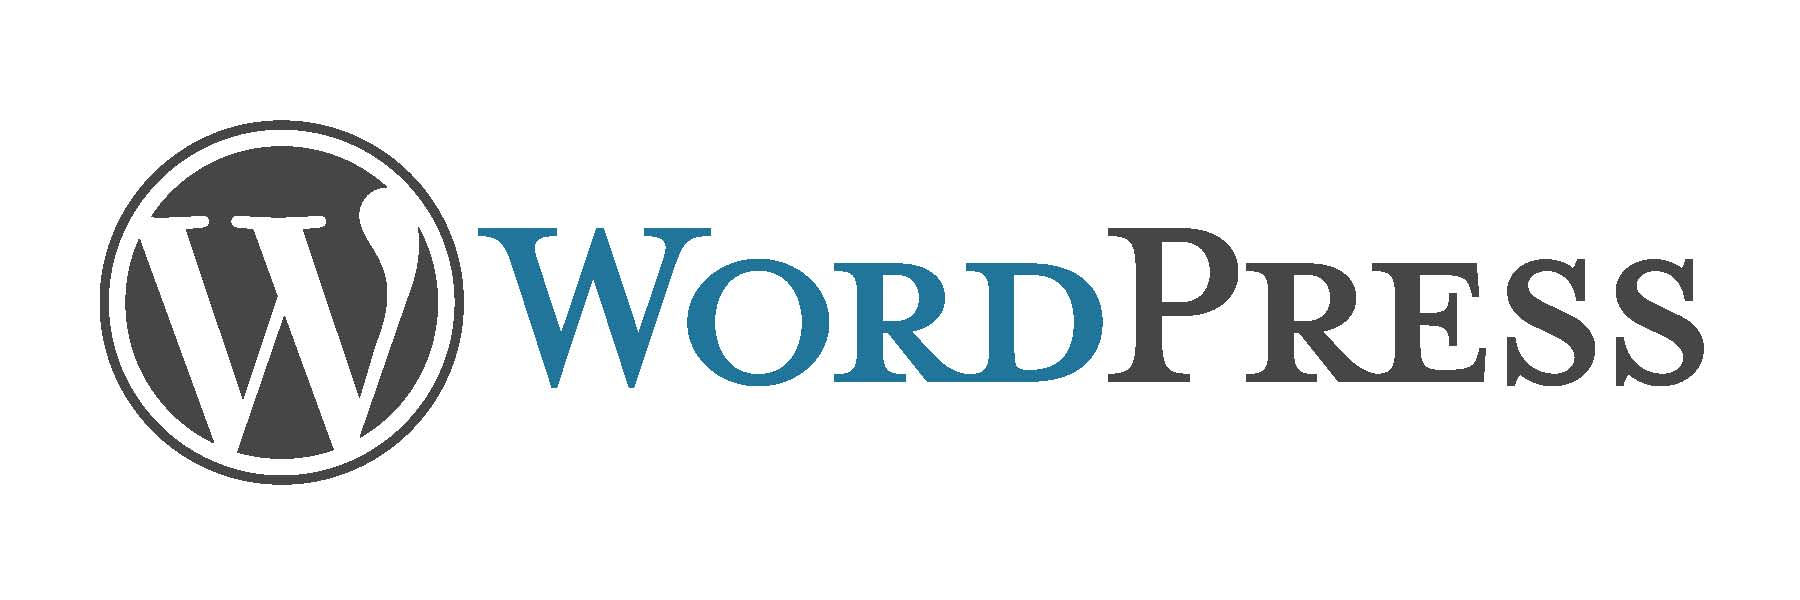 Buscar temas de WordPress